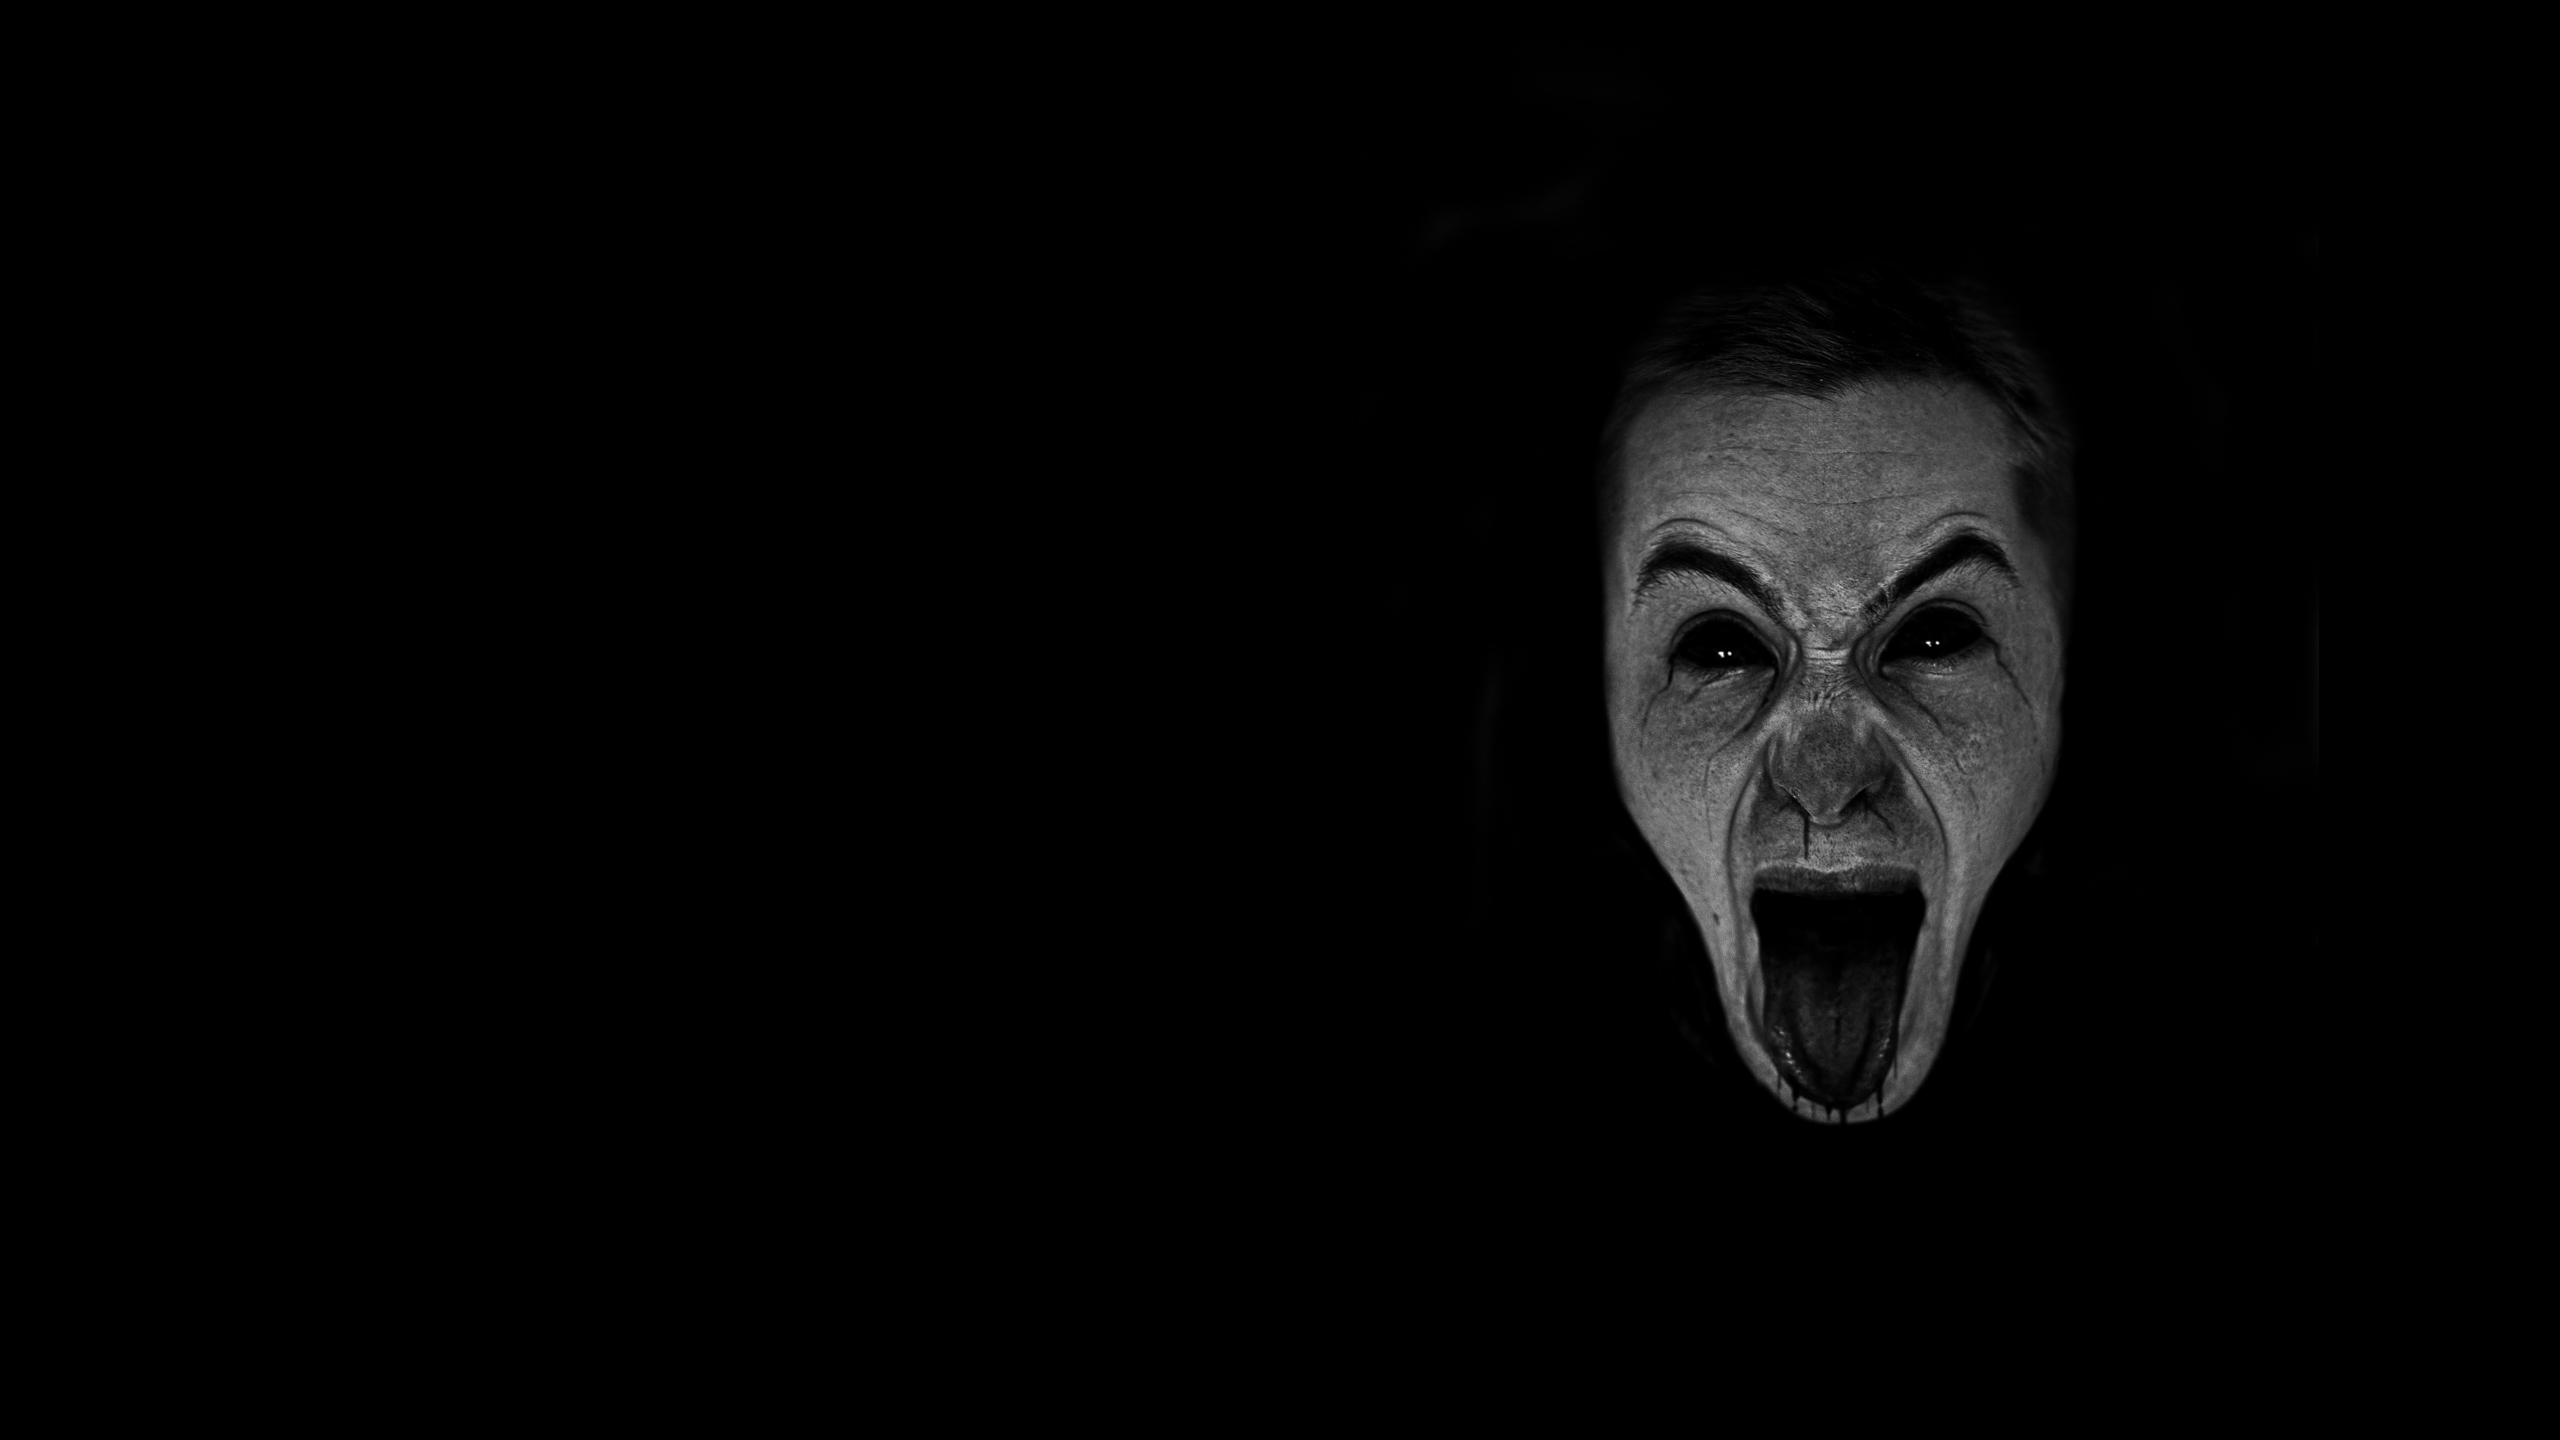 dark horror gothic mood scream expression evil face wallpaper 2560x1440